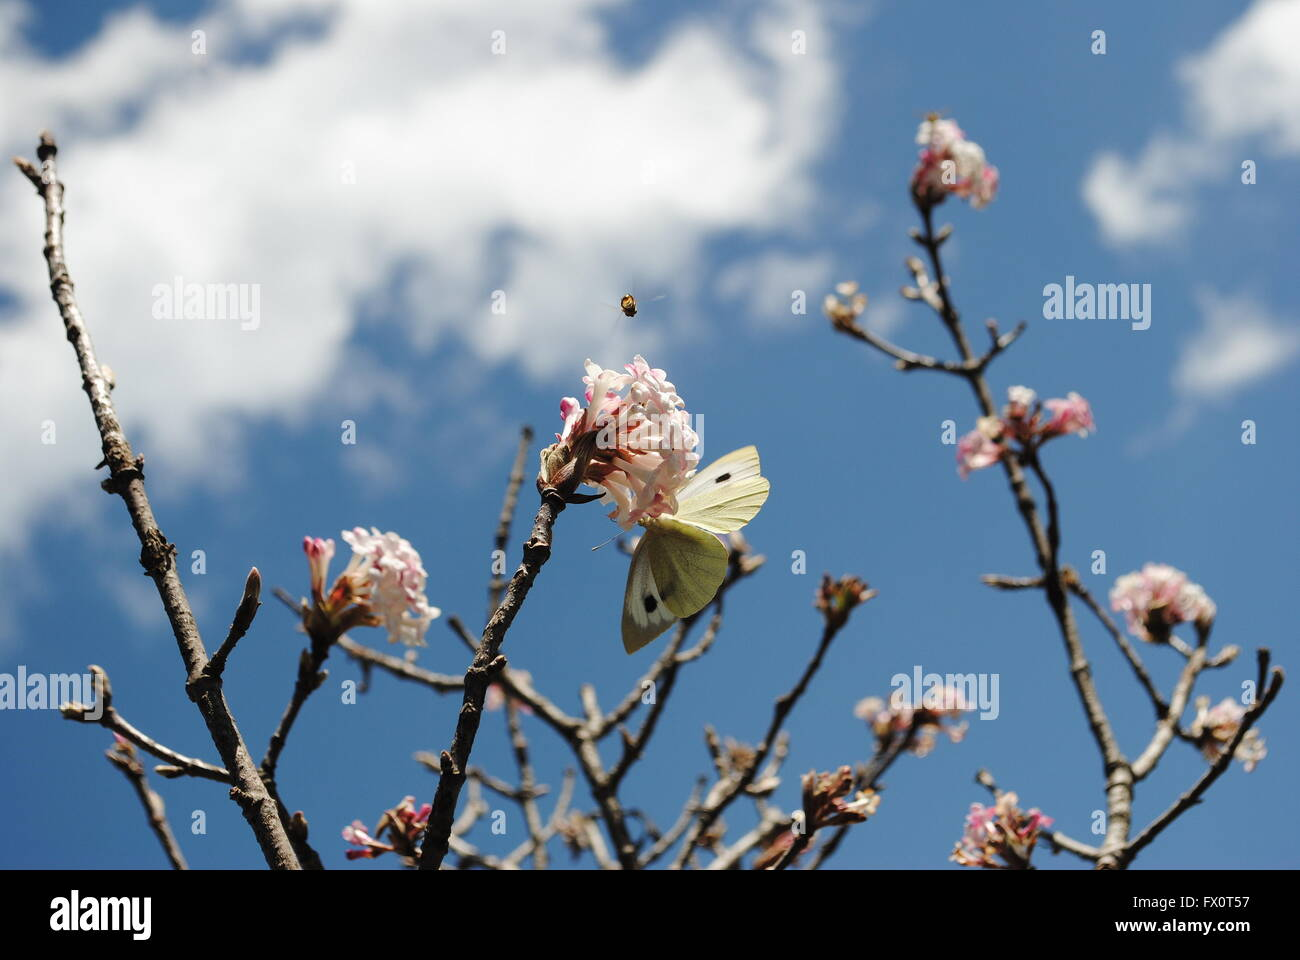 cabbage butterfly sucking nectar from a pile of apple flower. - Stock Image